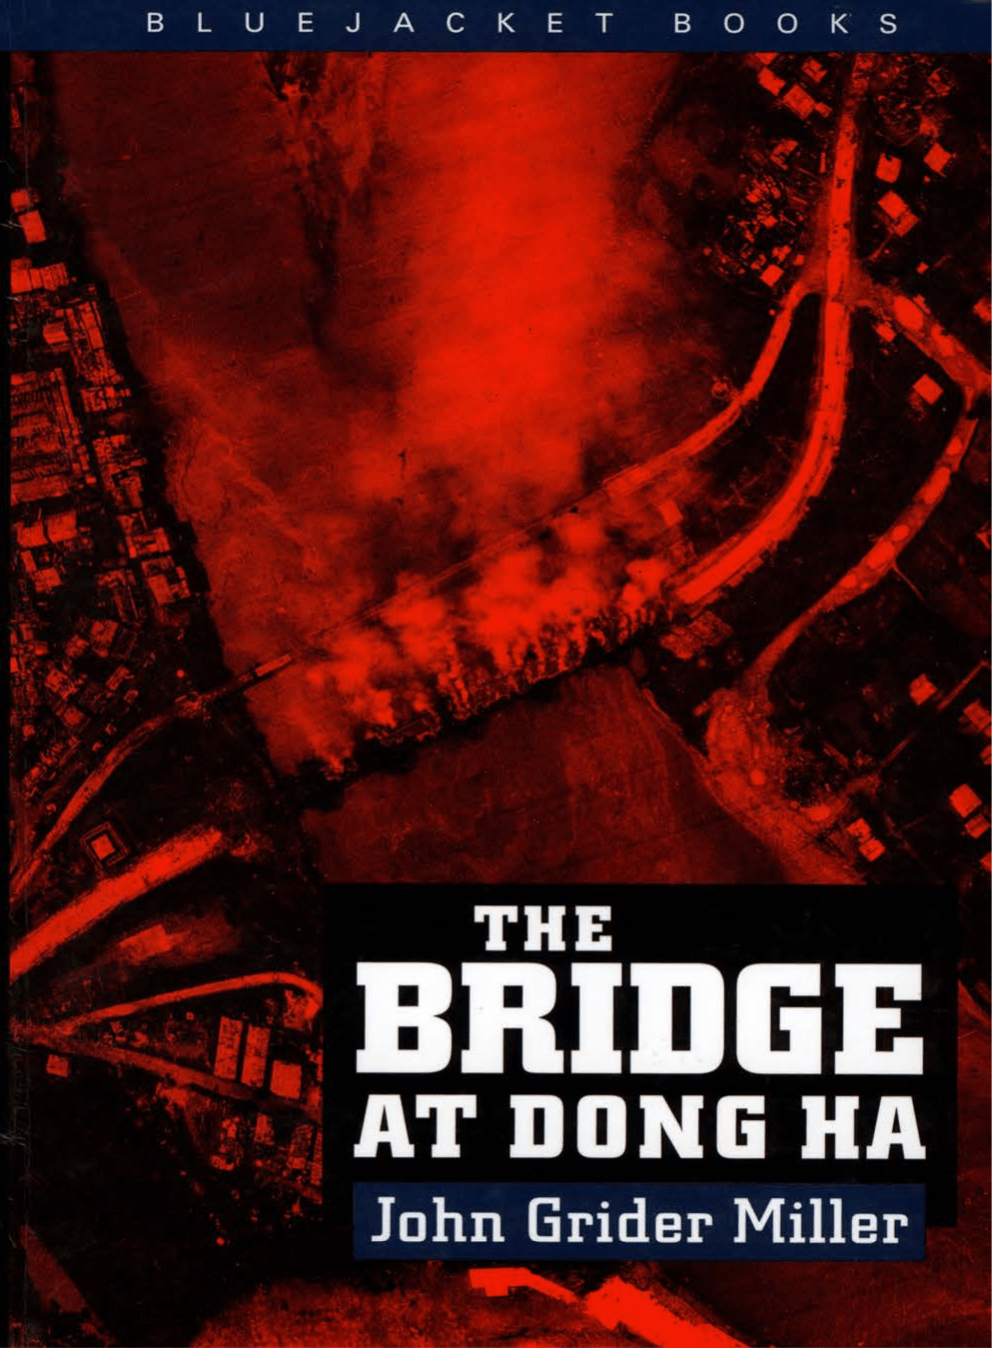 The Bridge at Dong Ha